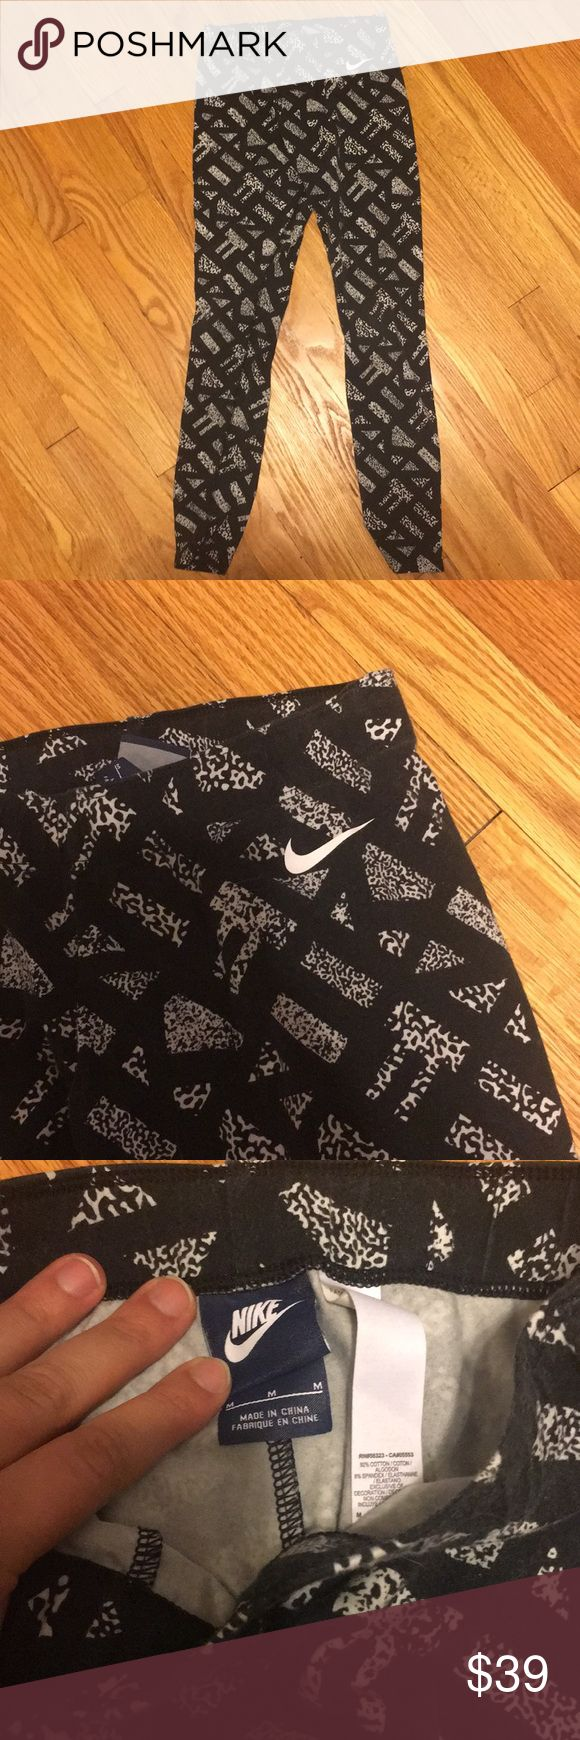 Nike running tights Excellent used condition. Great for workouts. Black slightly faded but cute pattern. Nike Pants Track Pants & Joggers